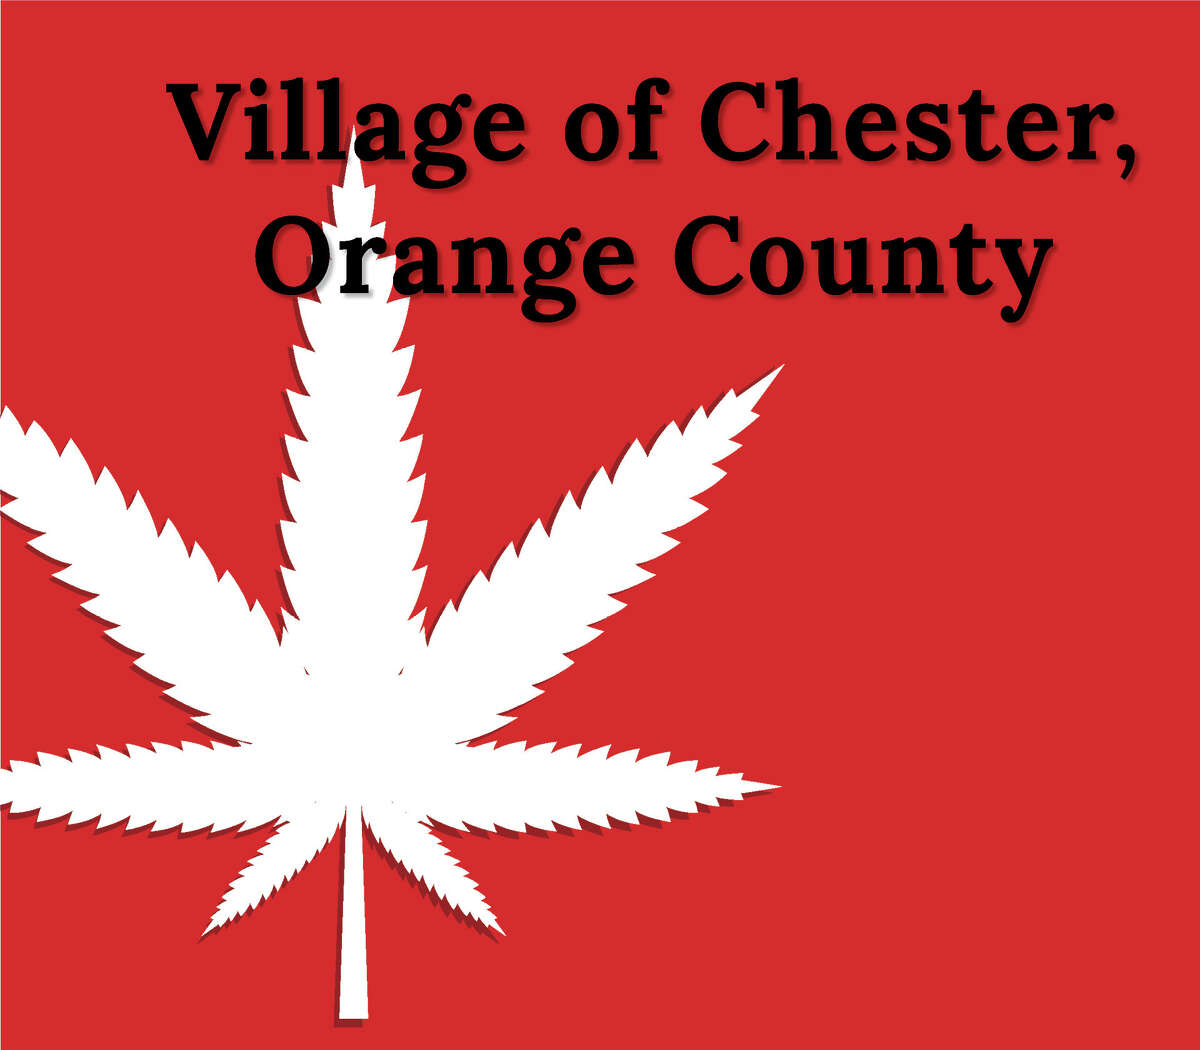 On July 12, the Village of Chester passed its local law to opt out of allowing dispensaries and on-site consumption establishments. The unanimous vote came after a short public hearing during the same meeting. Mayor John Thomas Bell was absent. Meanwhile, the Town of Chester plans to convene a citizens panels to consider the issues involved.